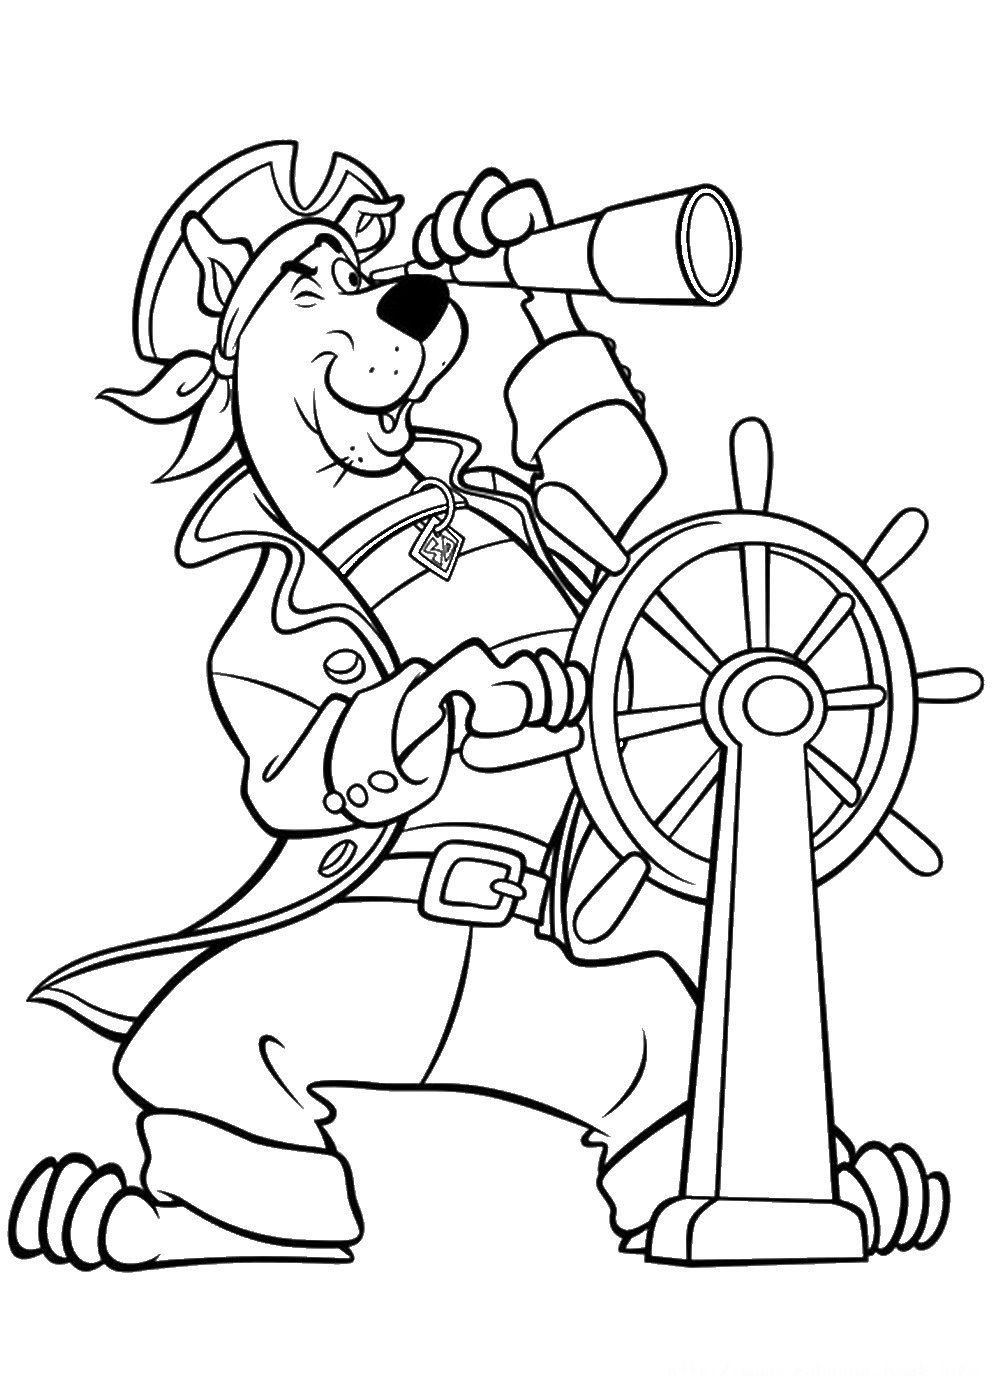 scooby colouring page